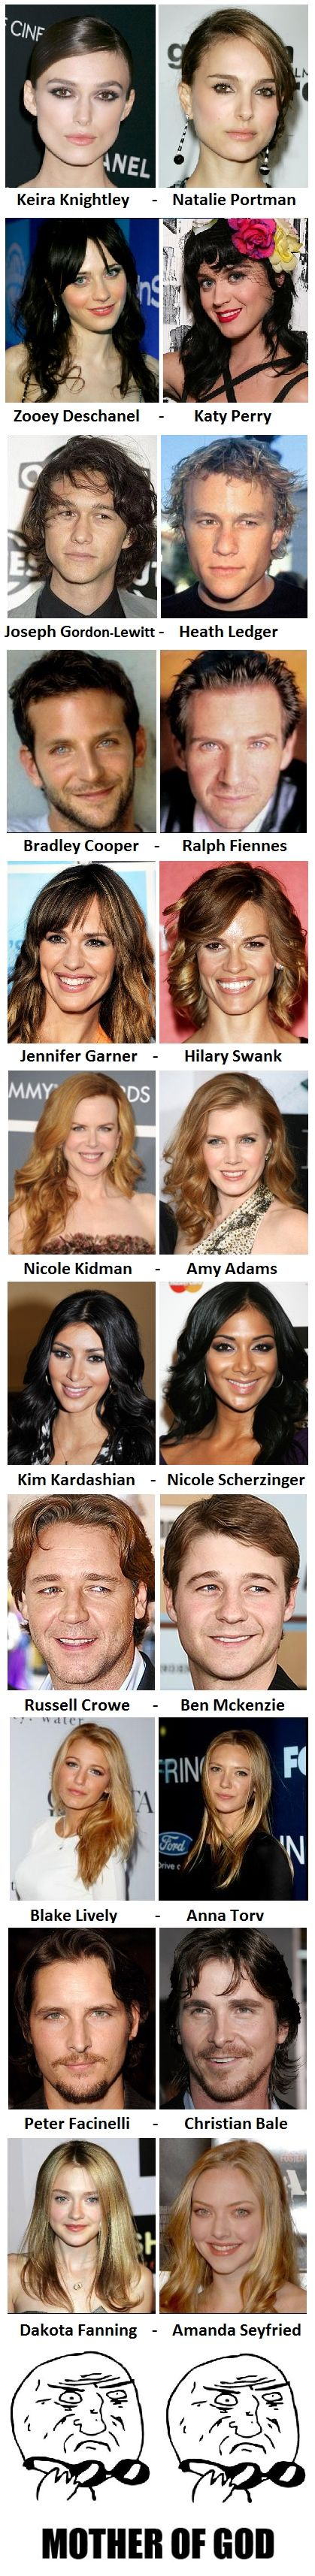 Celebrity Heads Names List for Celebrity Heads Game - playmeo